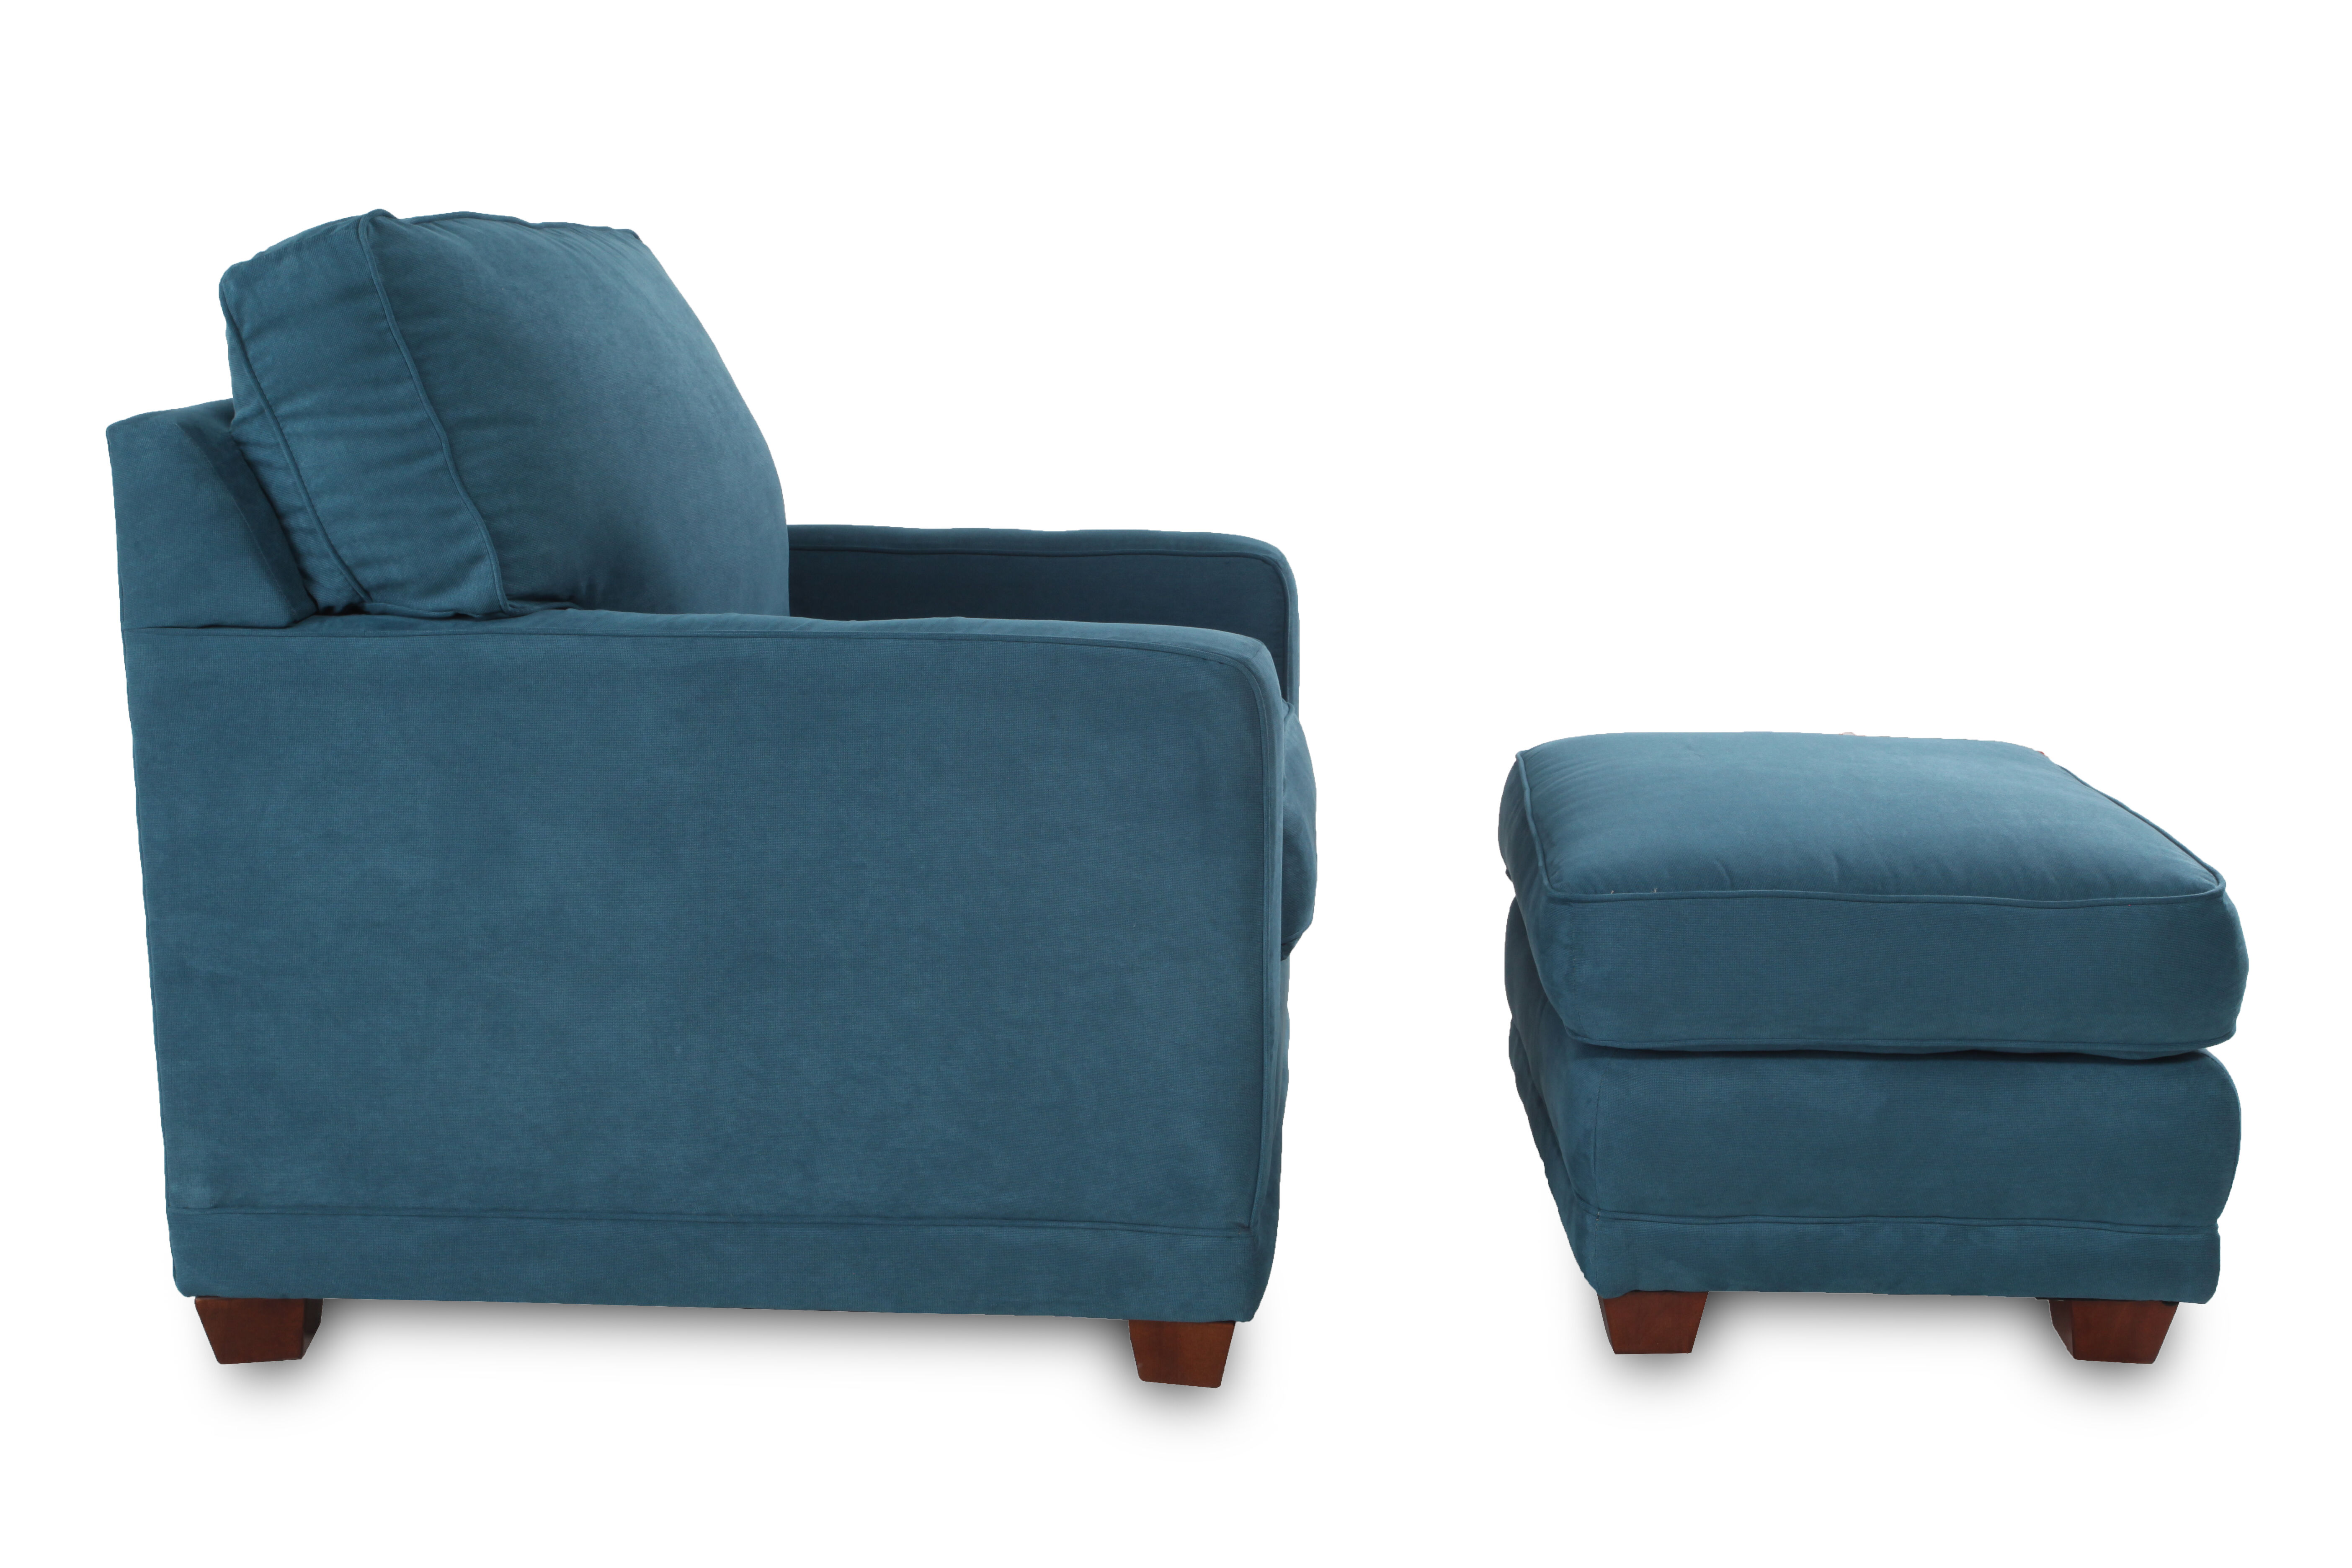 Boys Chair La Z Boy Kennedy Teal Chair And Ottoman Mathis Brothers